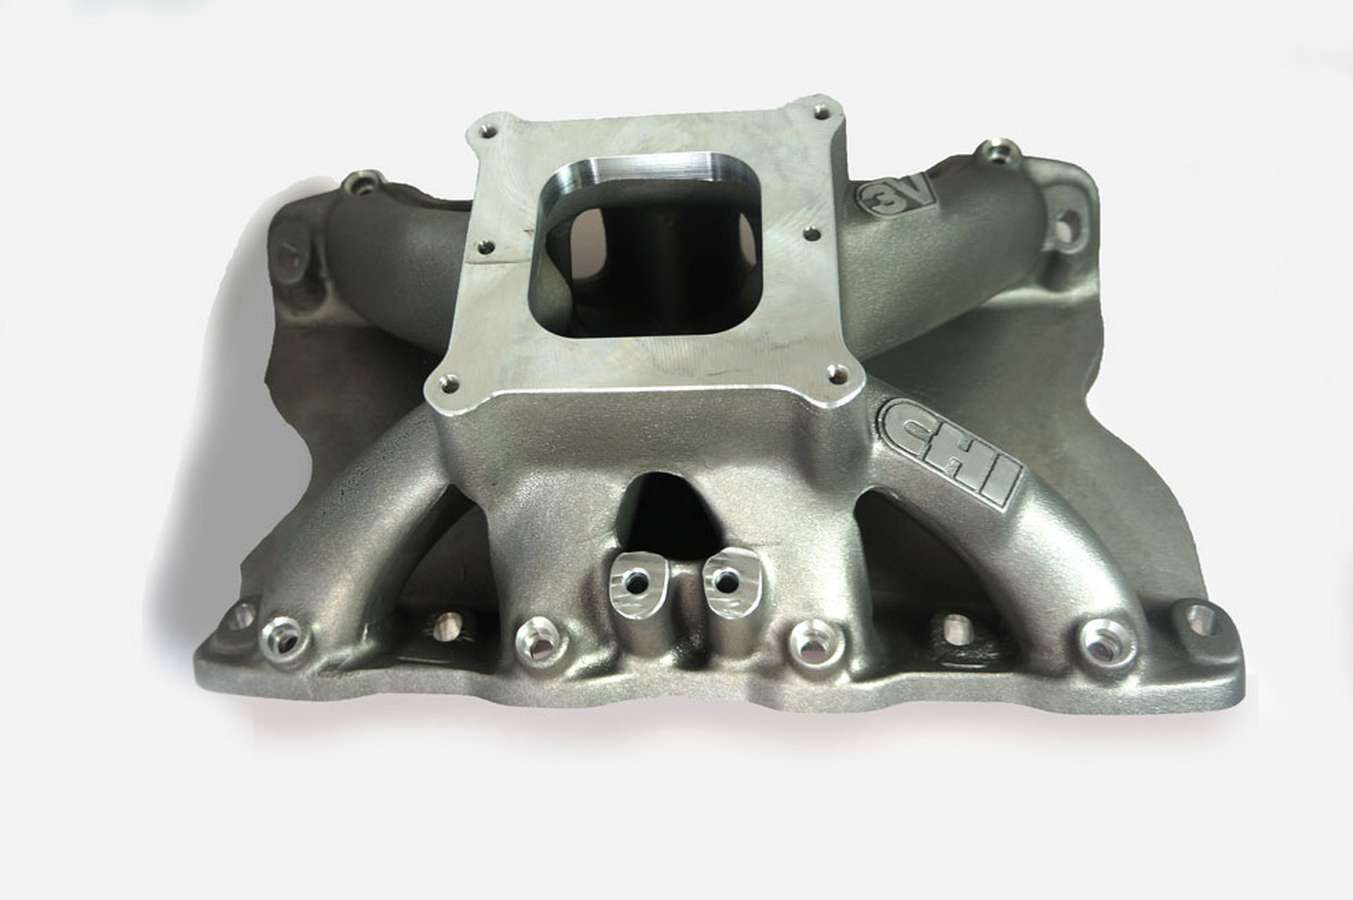 Cylinder Head Innovations INT3V208H8.2W Intake Manifold, 3V, Square Bore, 8.200 in Deck Height, Aluminum, Natural, Small Block Ford, Each